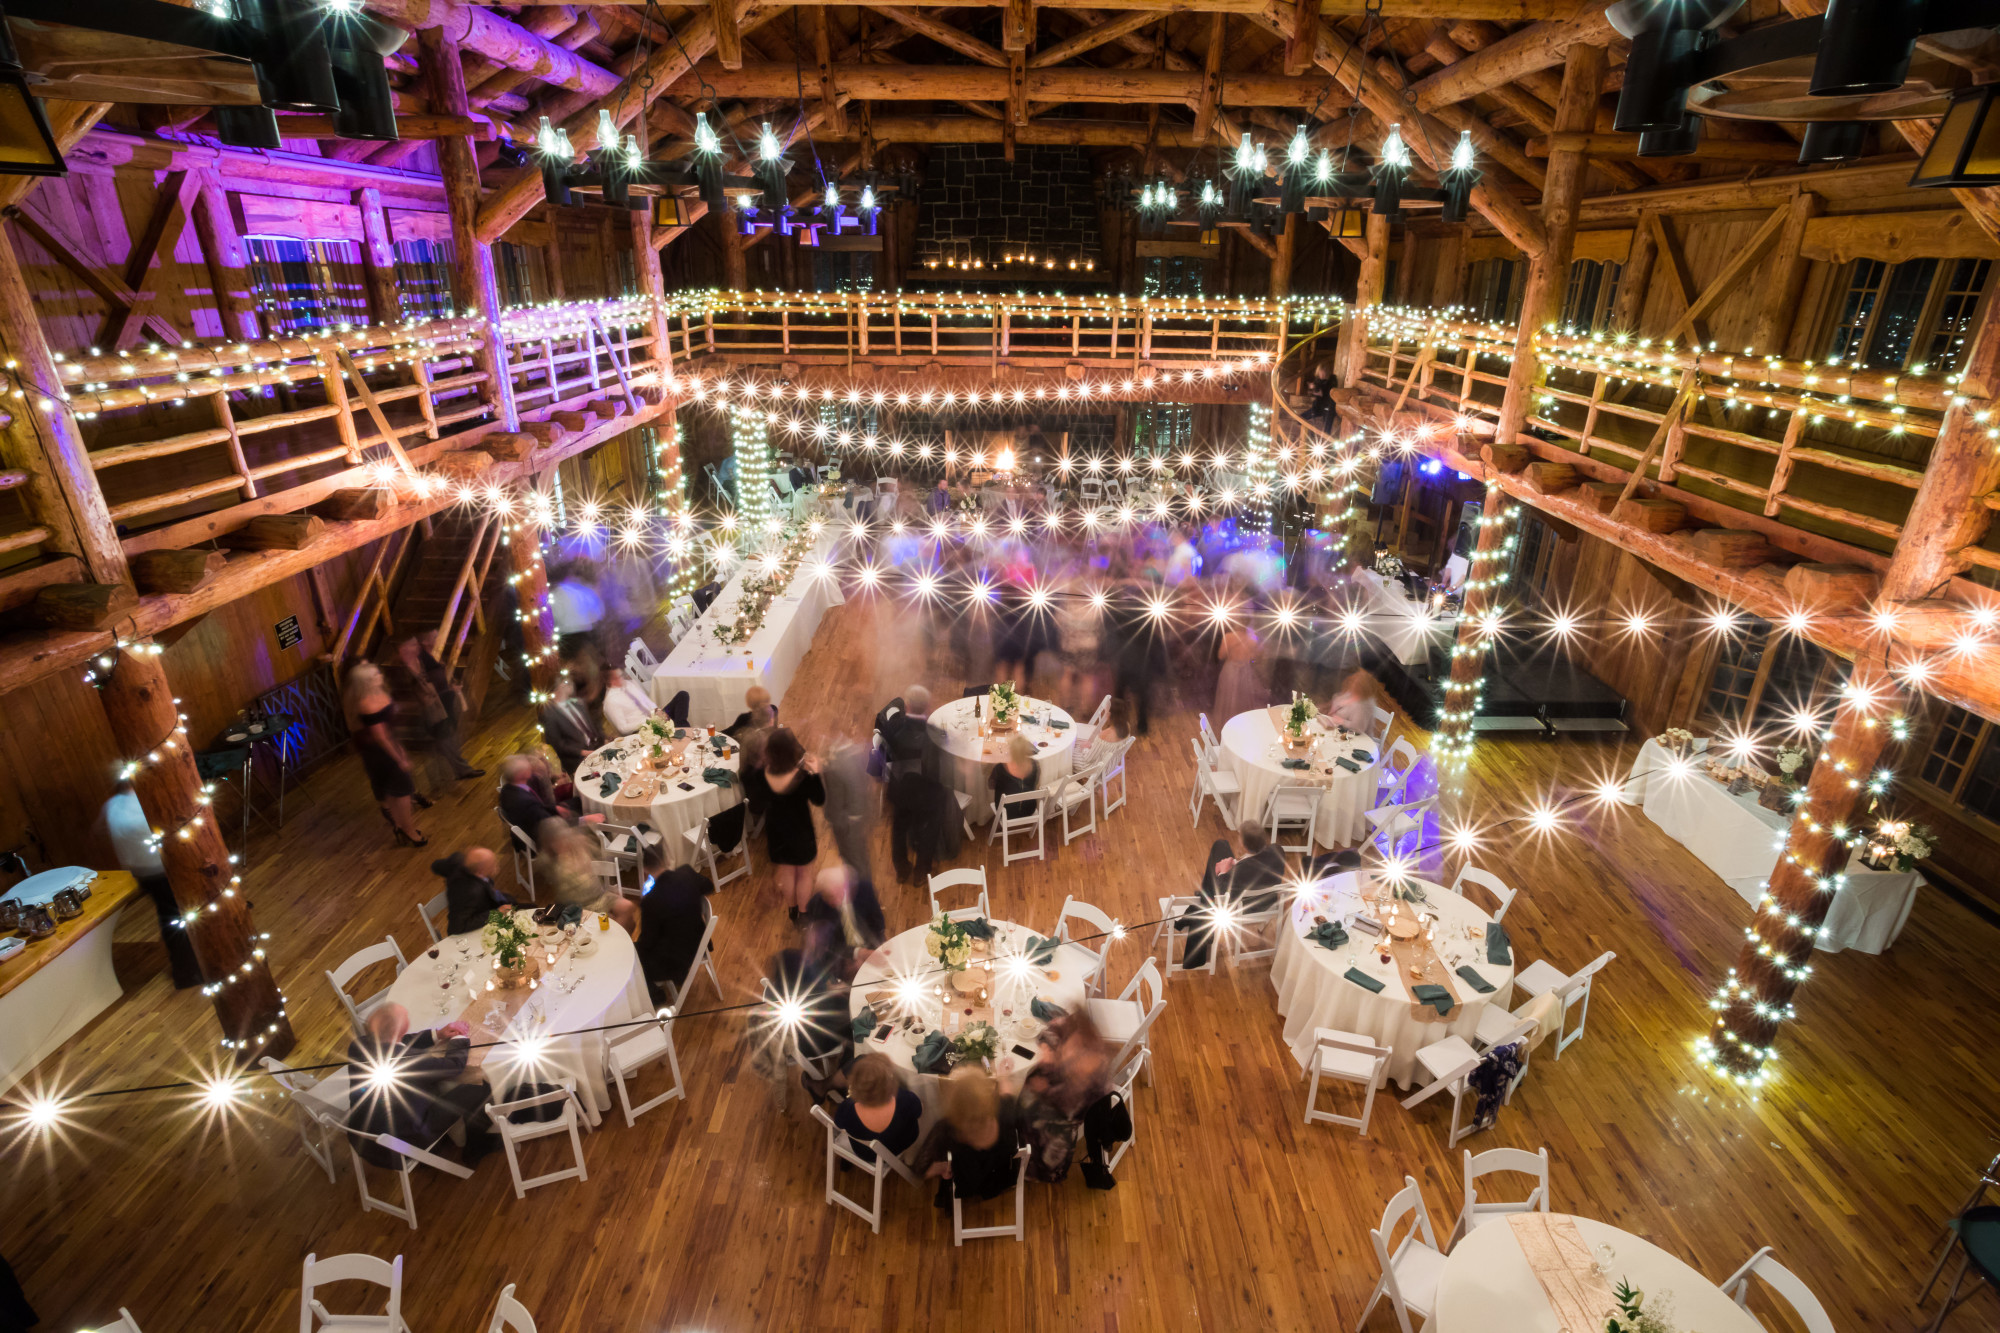 Wedding at an All-Inclusive Venue